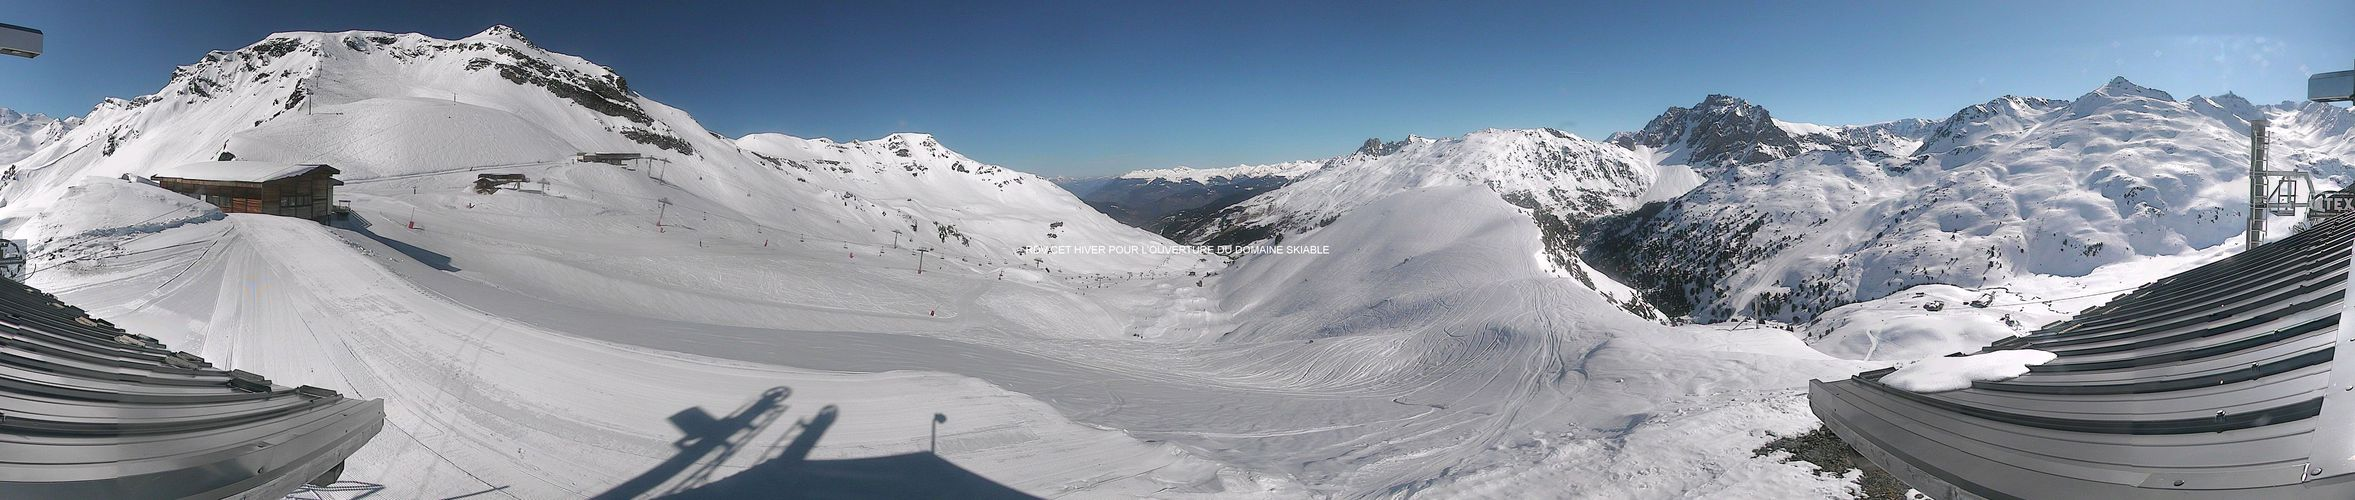 Webcam - Meribel Mottaret - Plattières - 2426 m